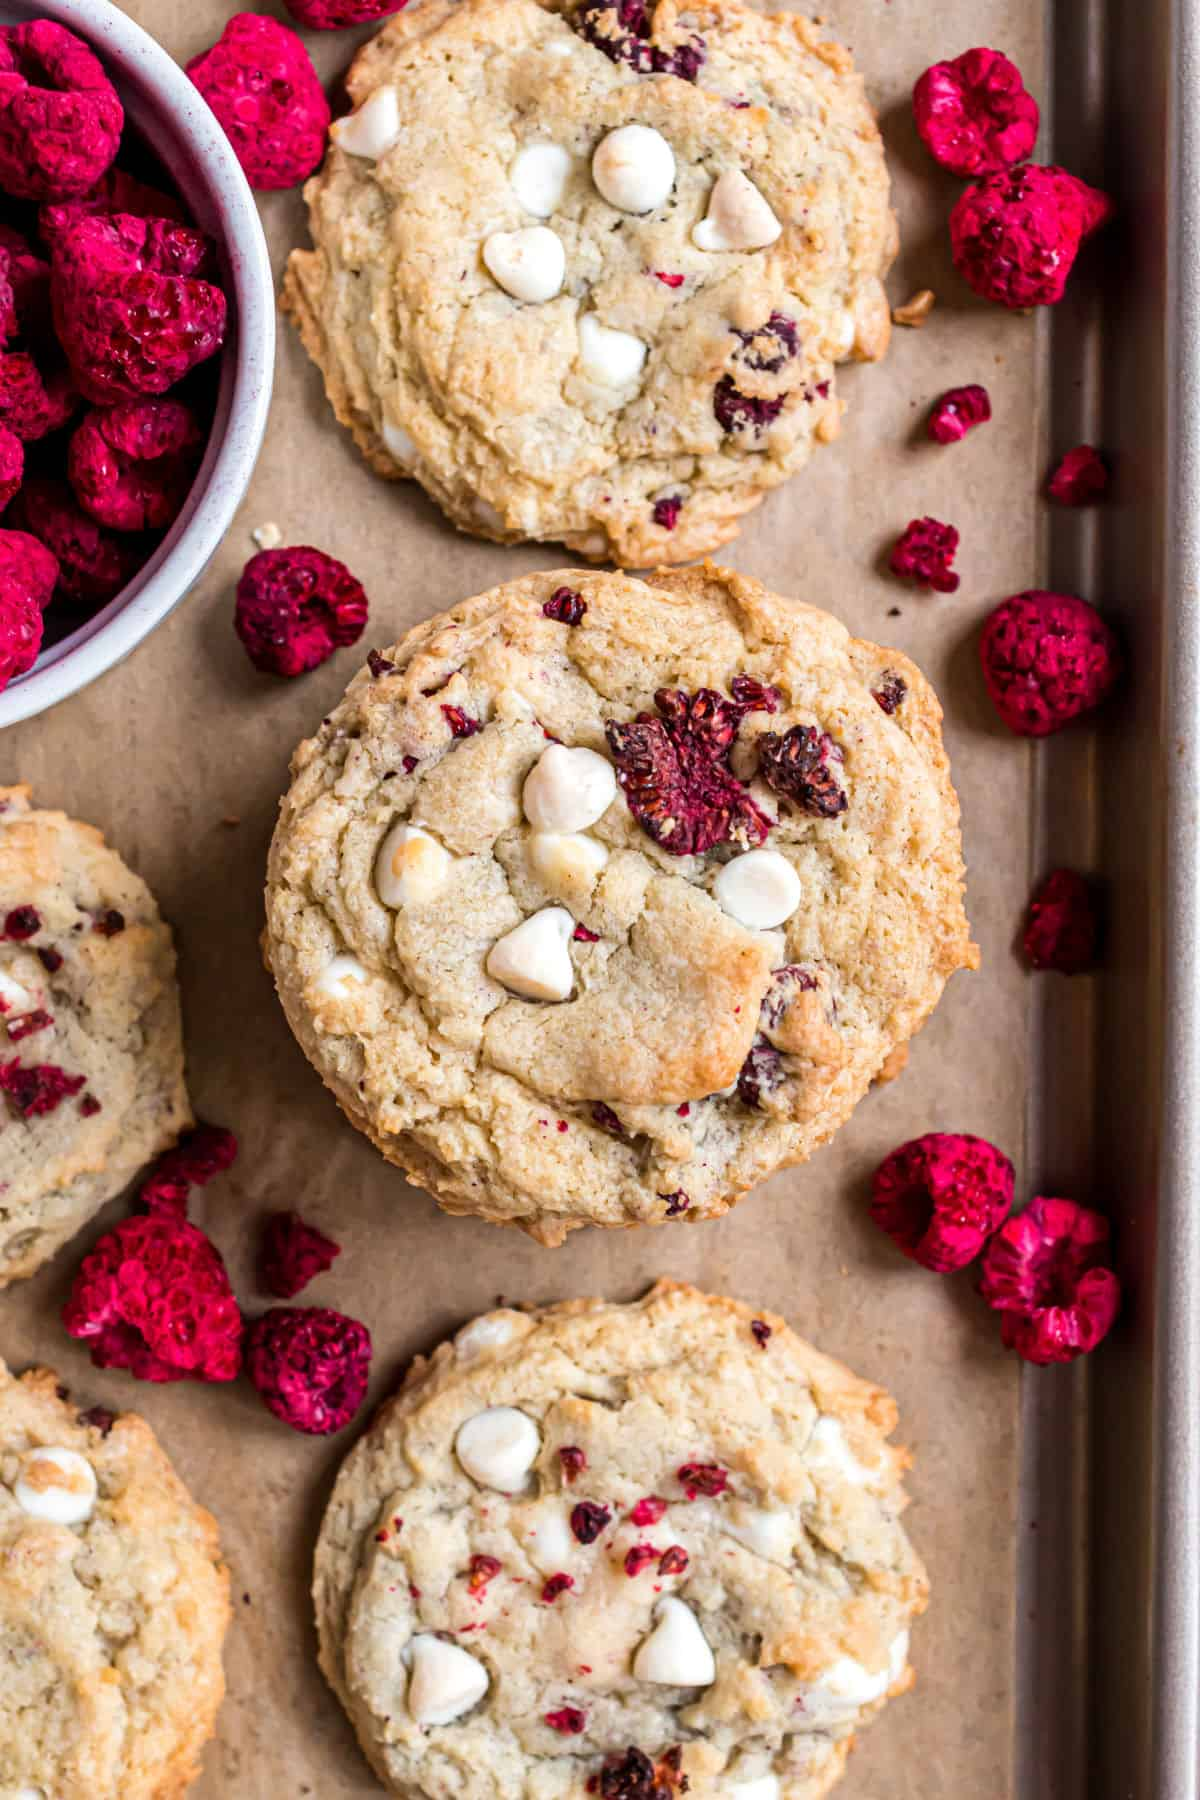 Raspberry cheesecake cookies baked on a parchment paper lined cookie sheet.